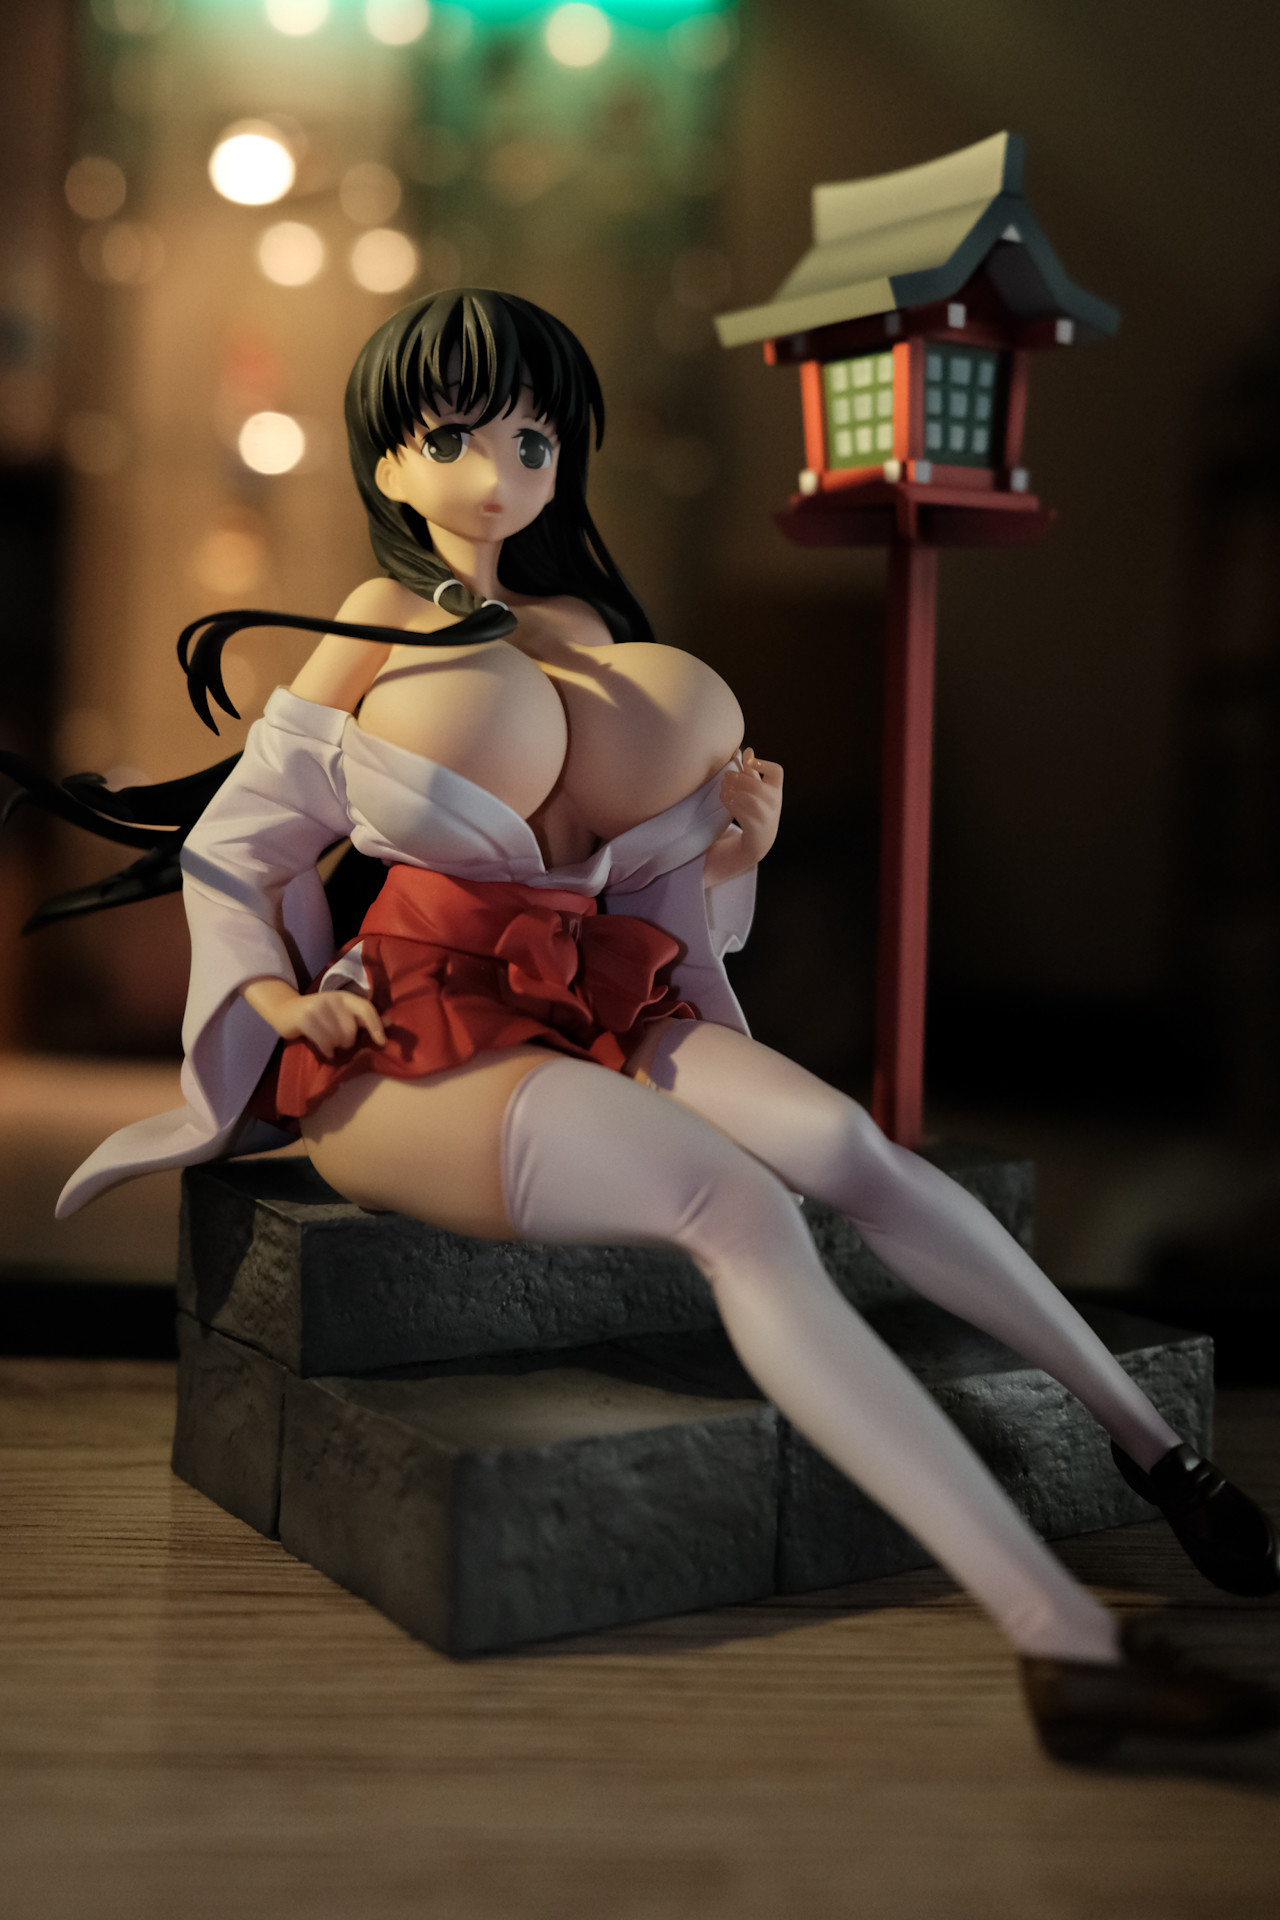 https://static.myfigurecollection.net/upload/pictures/2020/10/12/2539322.jpeg